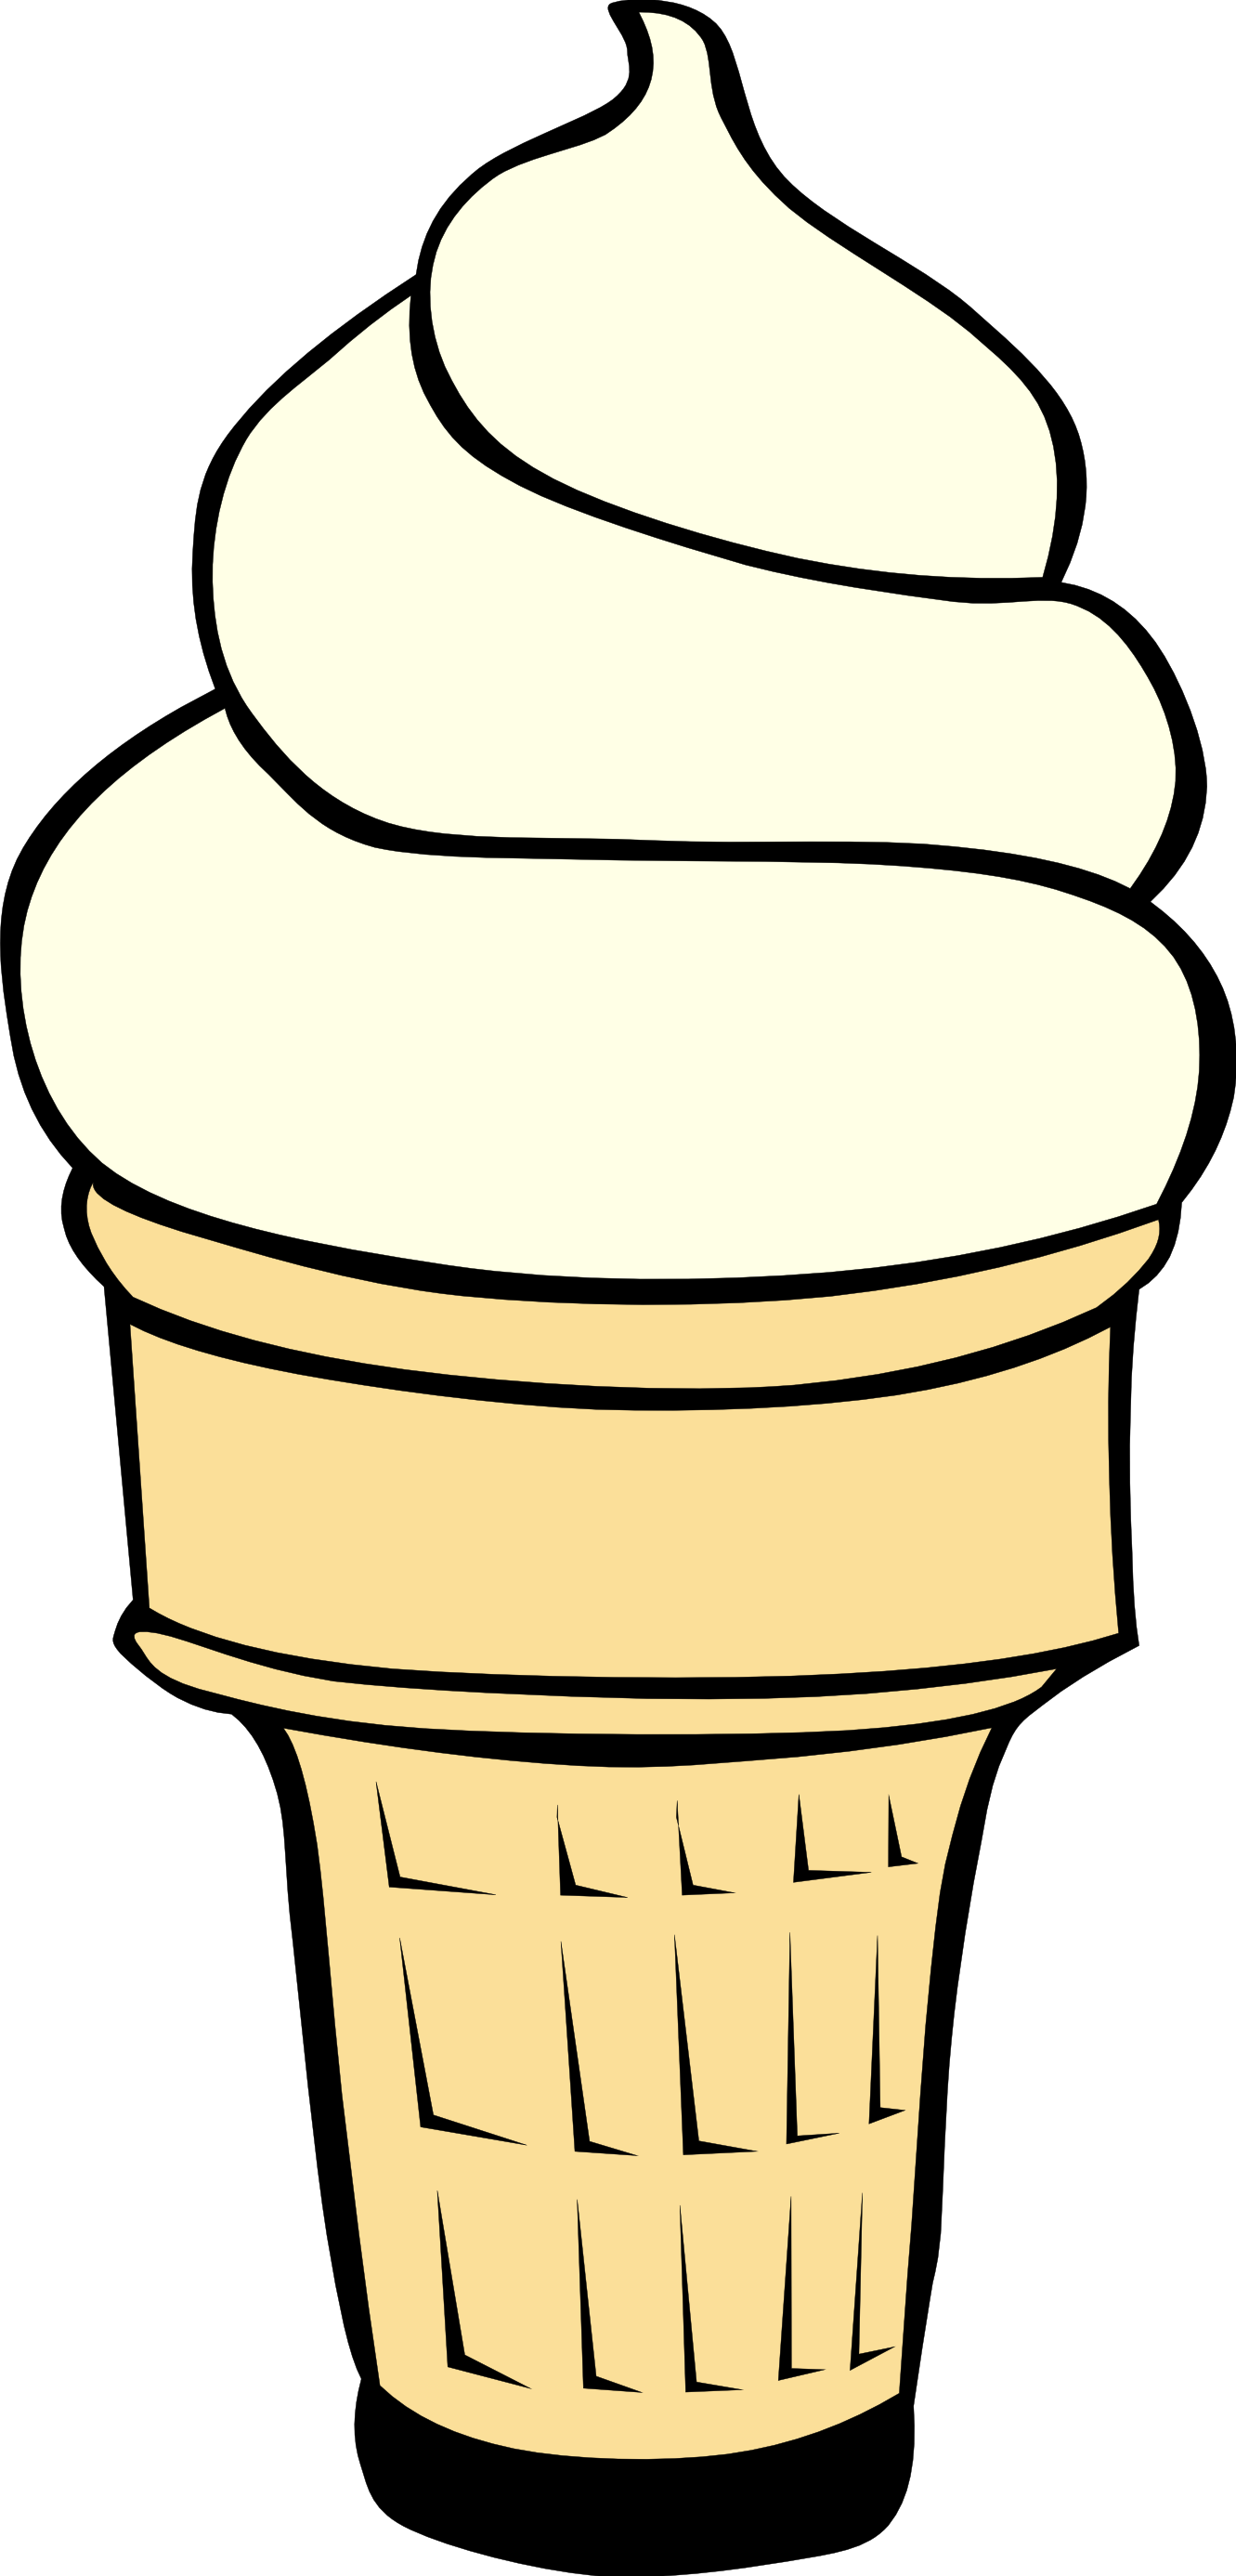 Ice cream cone without ice cream clipart banner black and white library Free Images Of Ice Cream Cones, Download Free Clip Art, Free ... banner black and white library